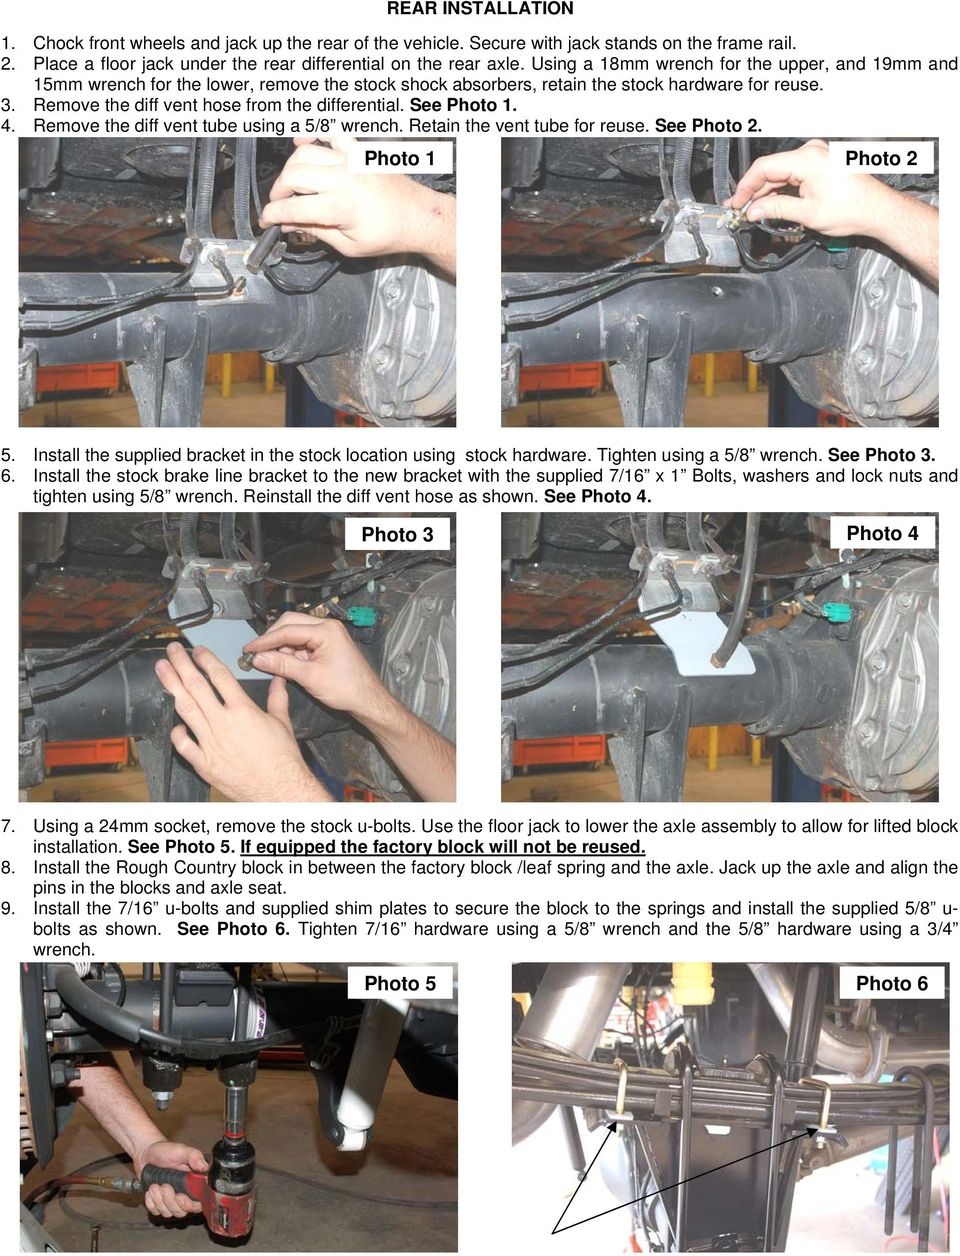 See Photo 1. 4. Remove the diff vent tube using a 5/8 wrench. Retain the vent tube for reuse. See Photo 2. Photo 1 Photo 2 5. Install the supplied bracket in the stock location using stock hardware.